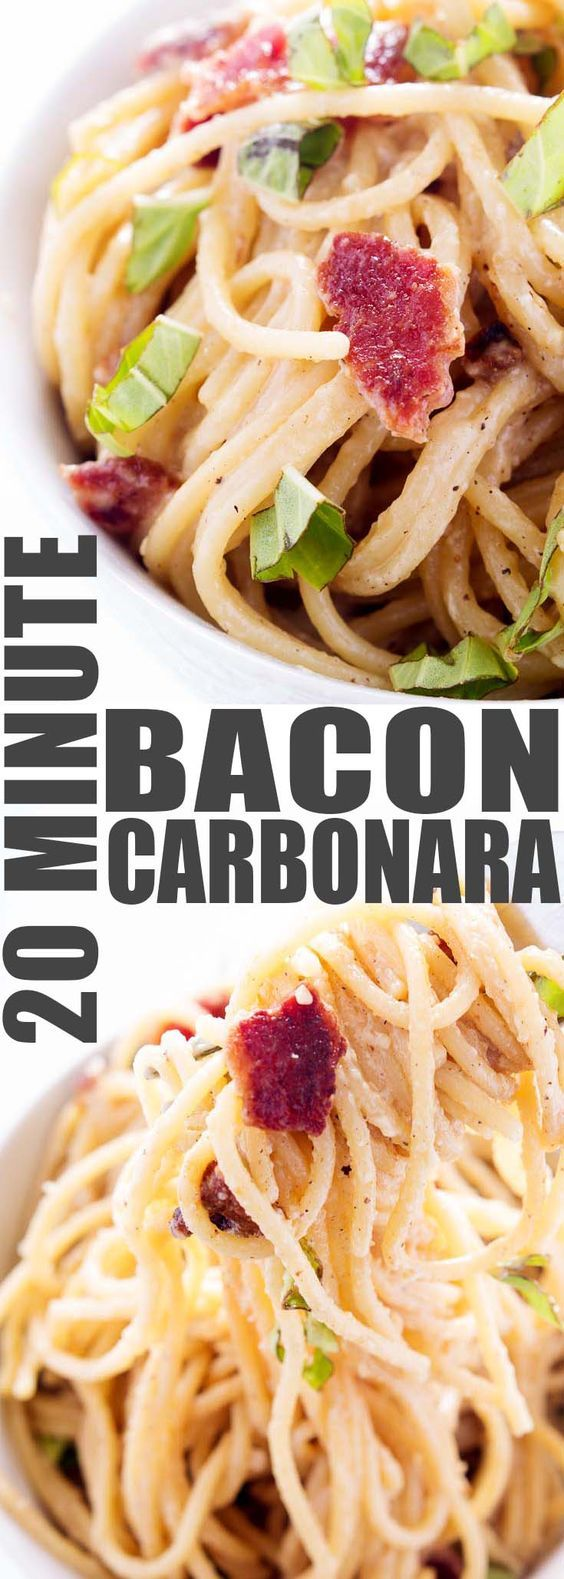 Love Bacon? Looking for a higher protein pasta sauce? Need a quick dinner with minimal cleanup? This Bacon Carbonara is just what you're looking for! Ready in 20 minutes or less, cooked entirely in just one skillet.